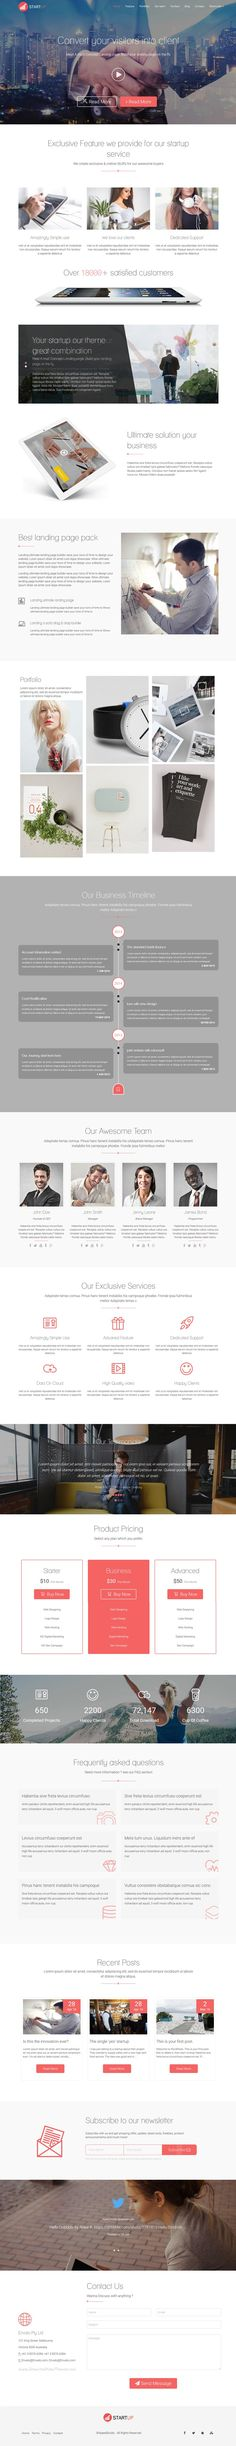 Startup is a fully-featured multi-concept Drag & Drop #WordPress #Theme that looks effortlessly on-point in #startup business, events, app showcase or marketing template to promote your business or corporate website download now➯ https://themeforest.net/item/startup-multi-concept-landing-page-wordpress-theme/16010428?ref=Datasata